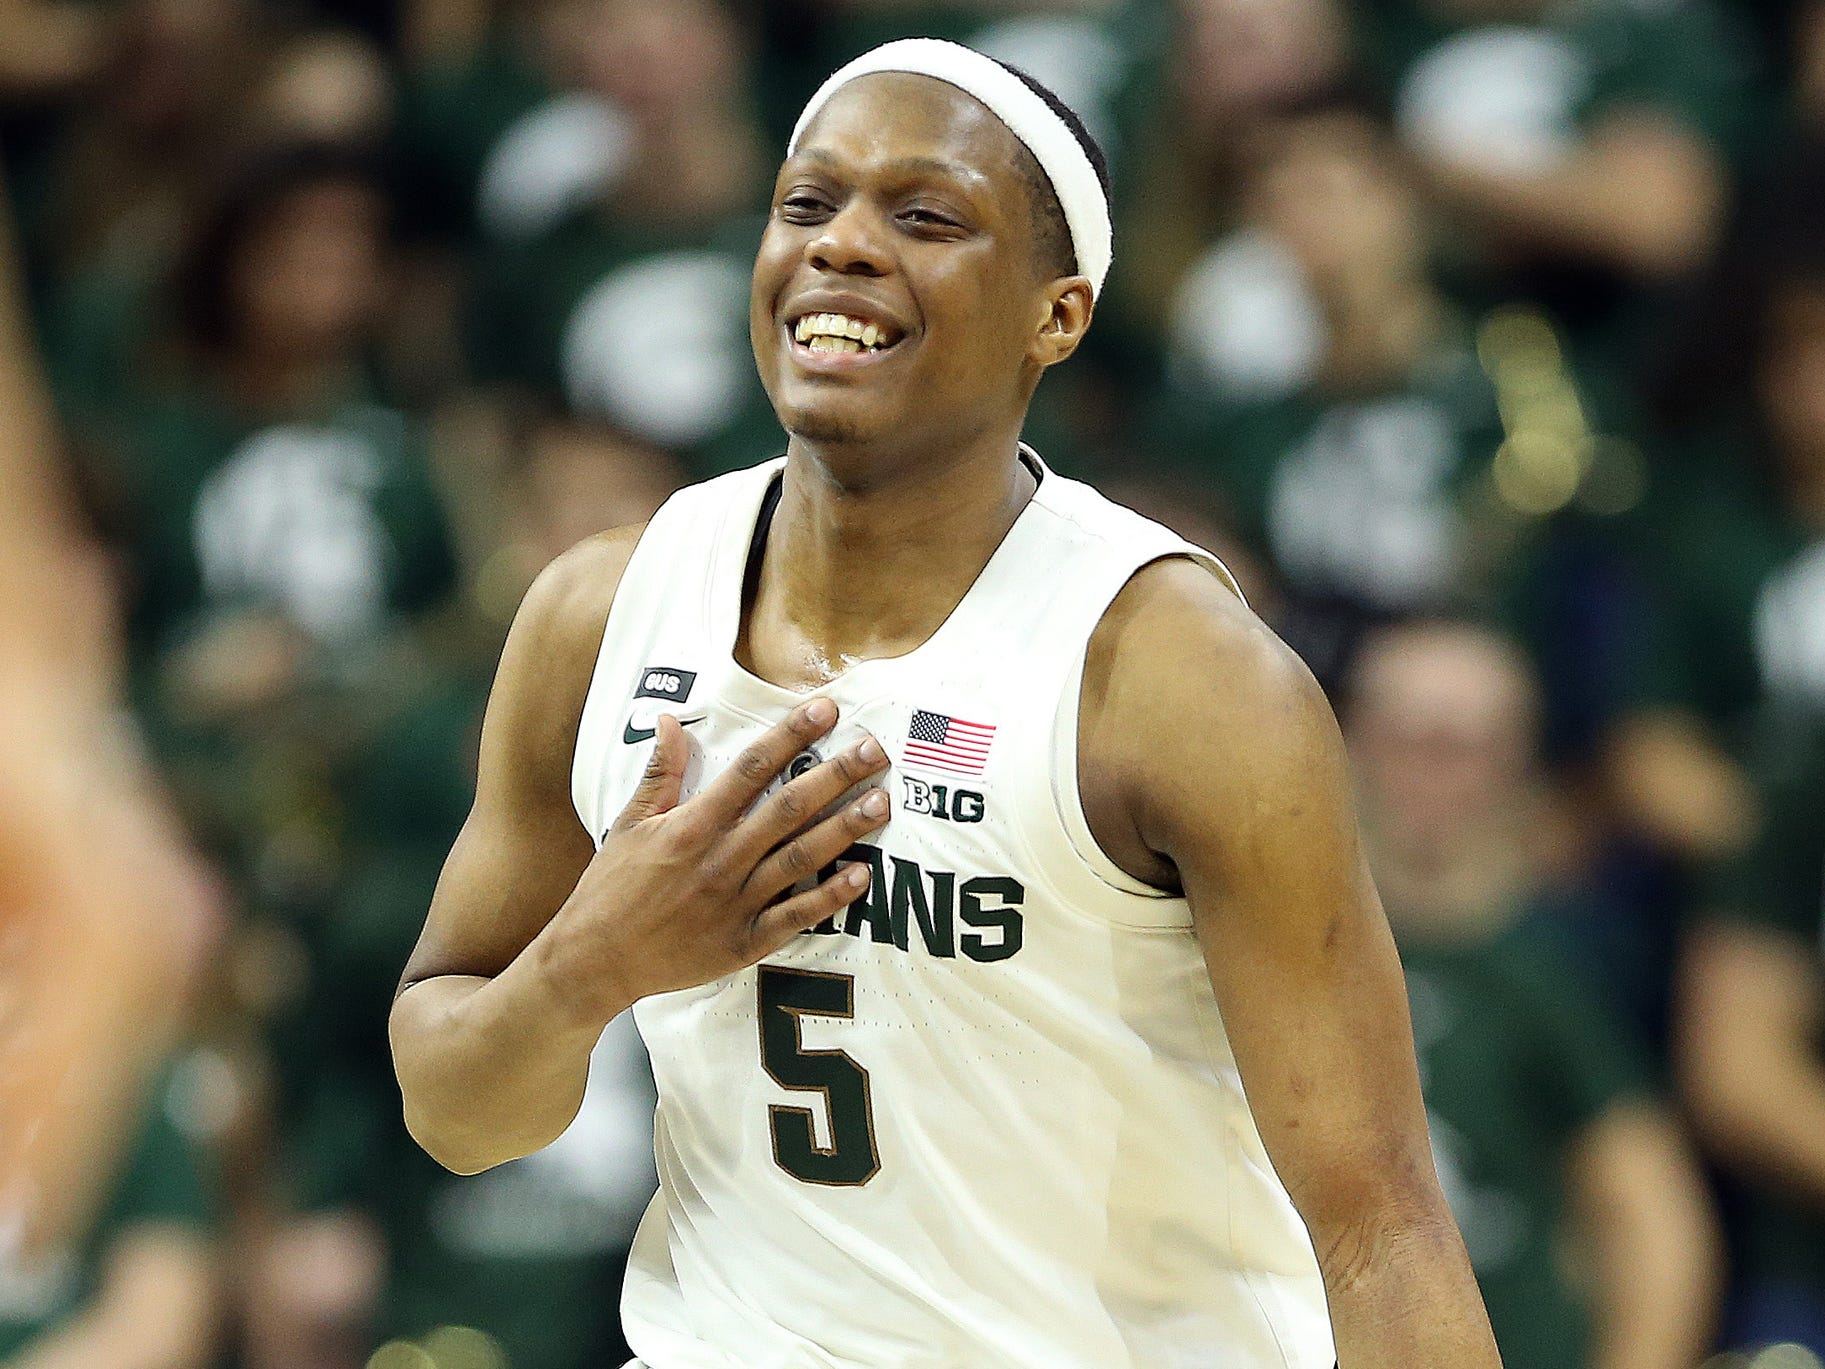 Michigan State guard Cassius Winston gestures during the second half of the 71-60 win over Rutgers on Wednesday, Feb. 20, 2019, at the Breslin Center.